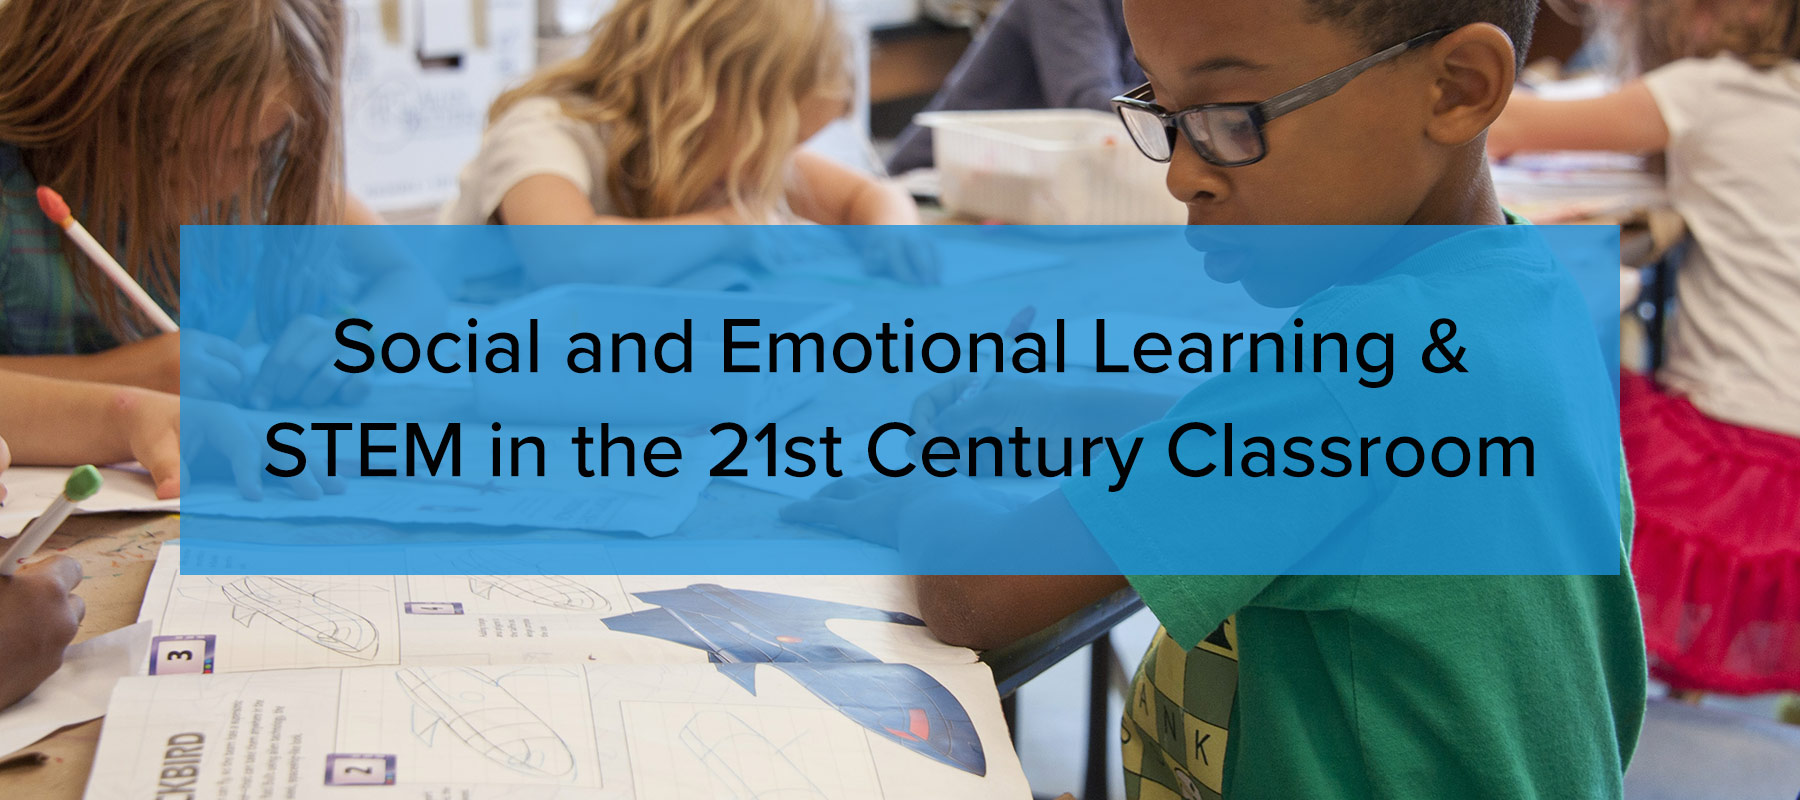 Social and Emotional Learning & STEM in the 21st Century Classroom